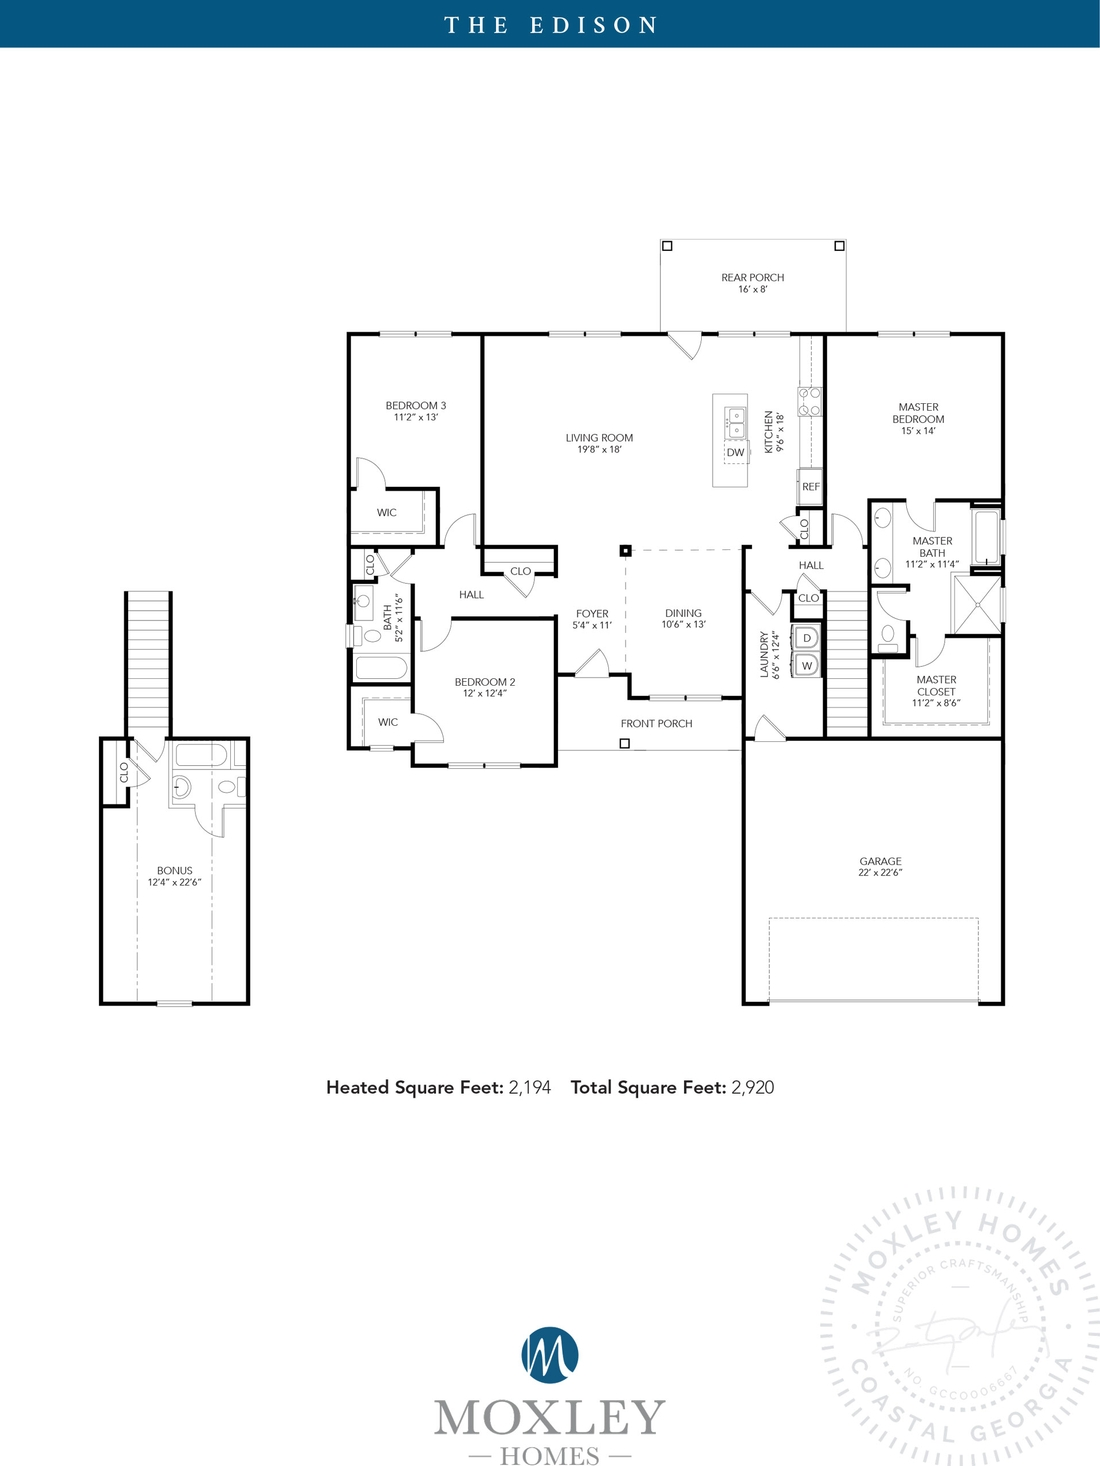 carriage gate plantation, grace crossing, The Edison floor plans